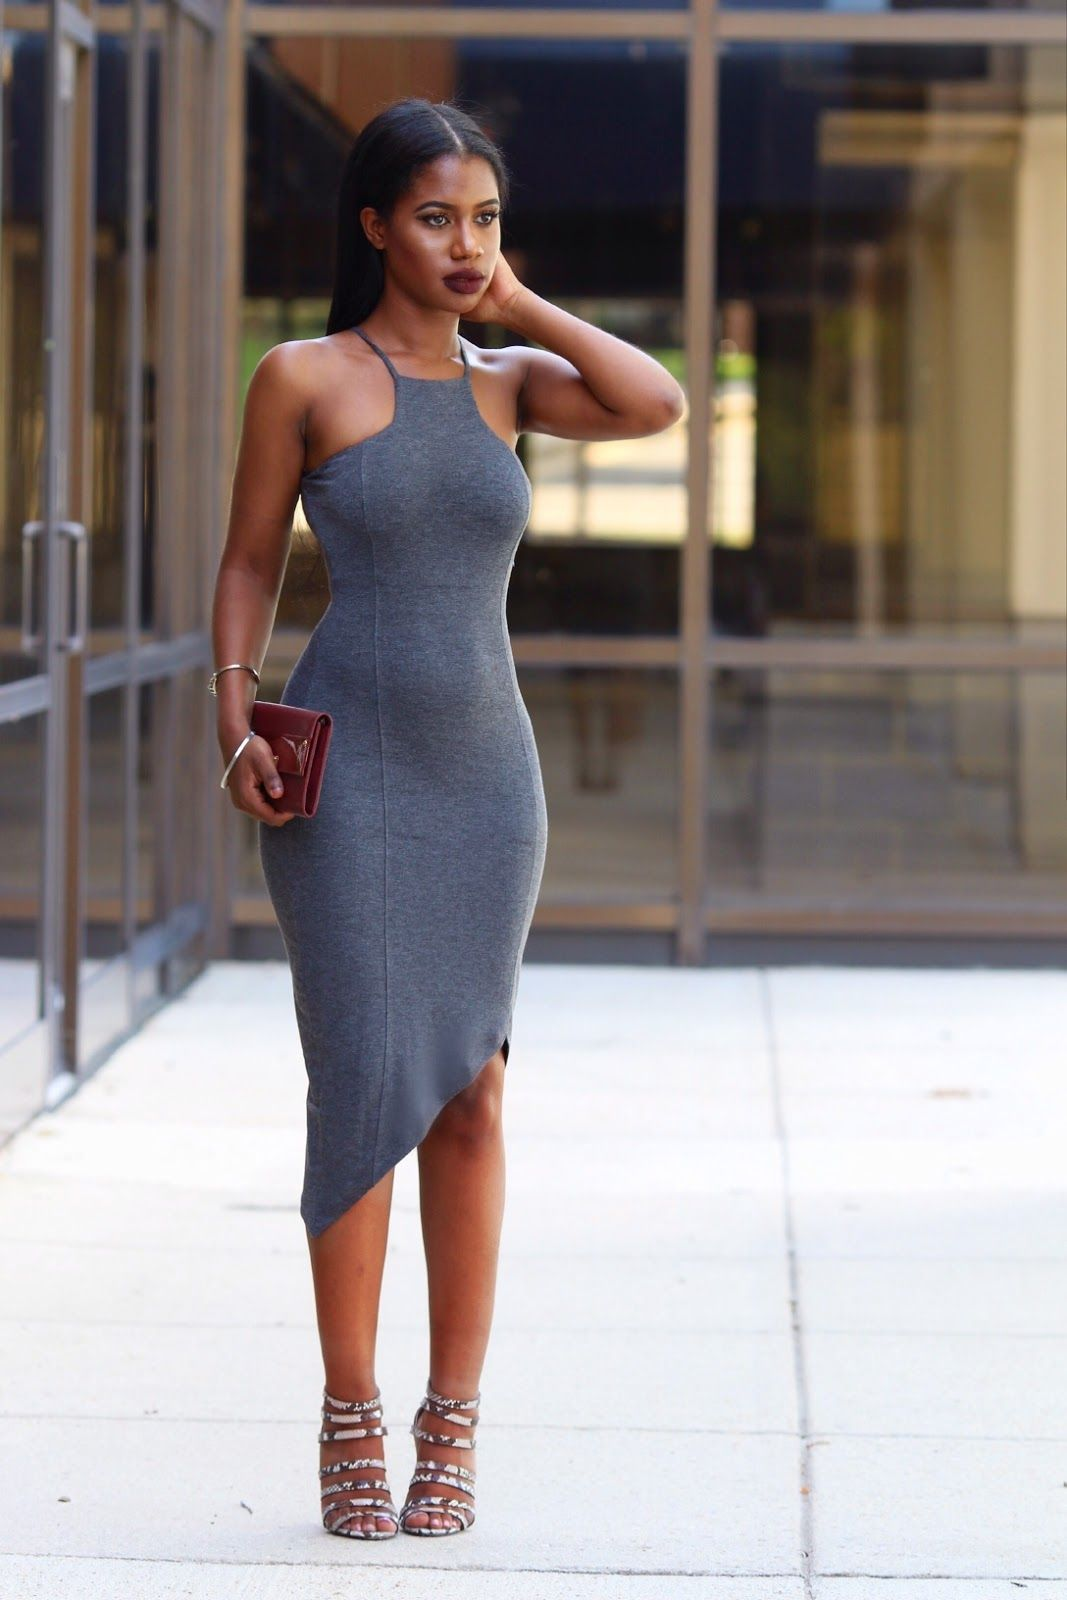 summer style, street style, black girl, bodycon dress